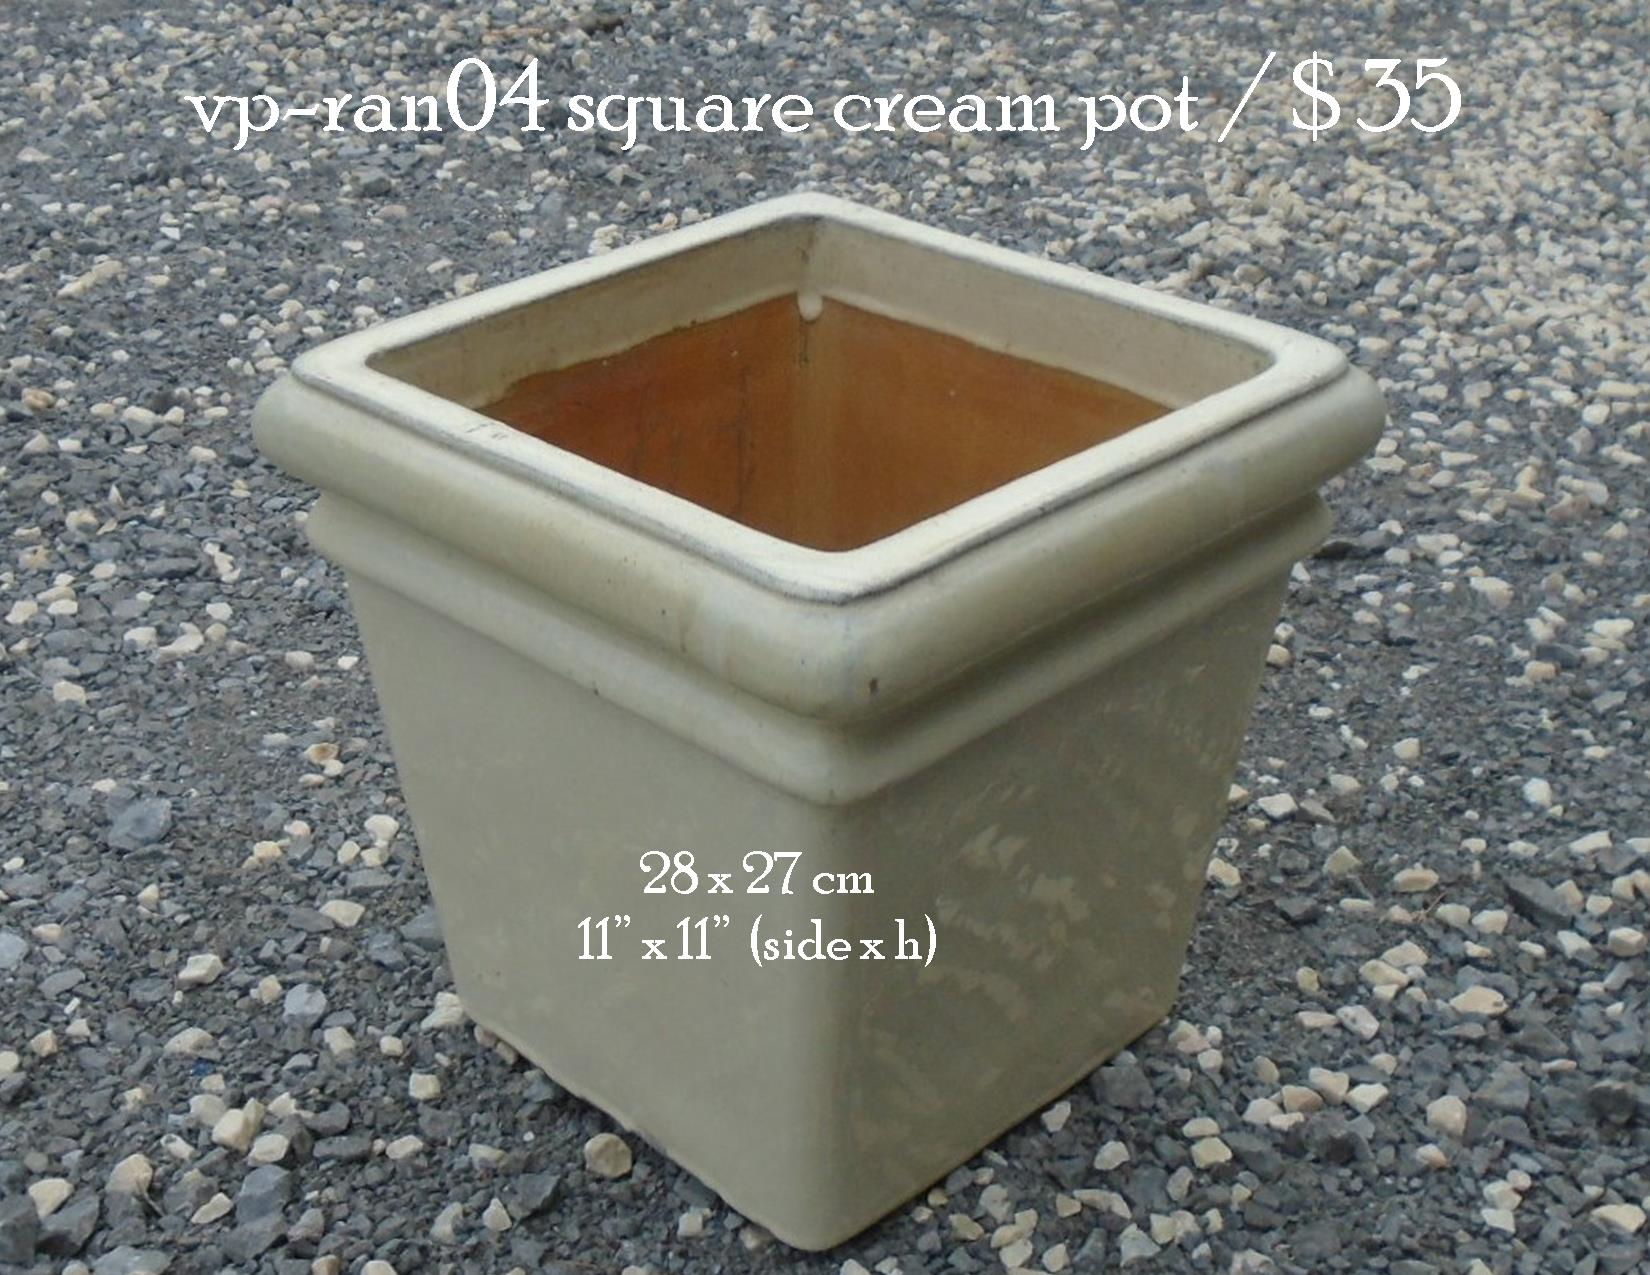 vp-ran04 square cream pot